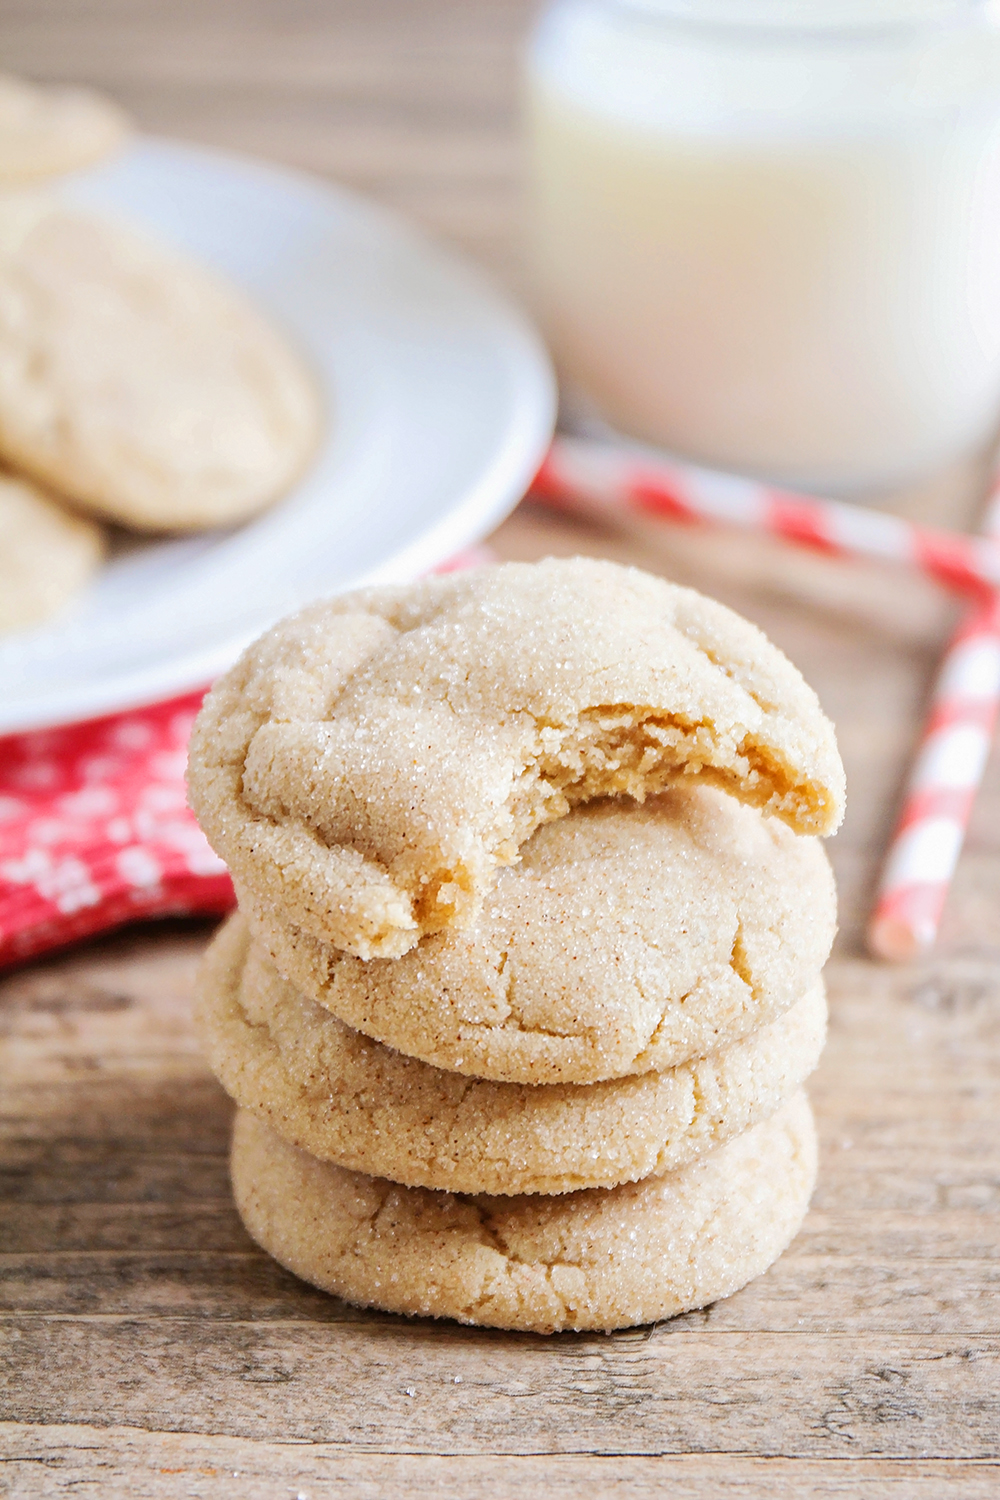 These chai spice snickerdoodles taste amazing and are the perfect mixture of sweetness and spice!